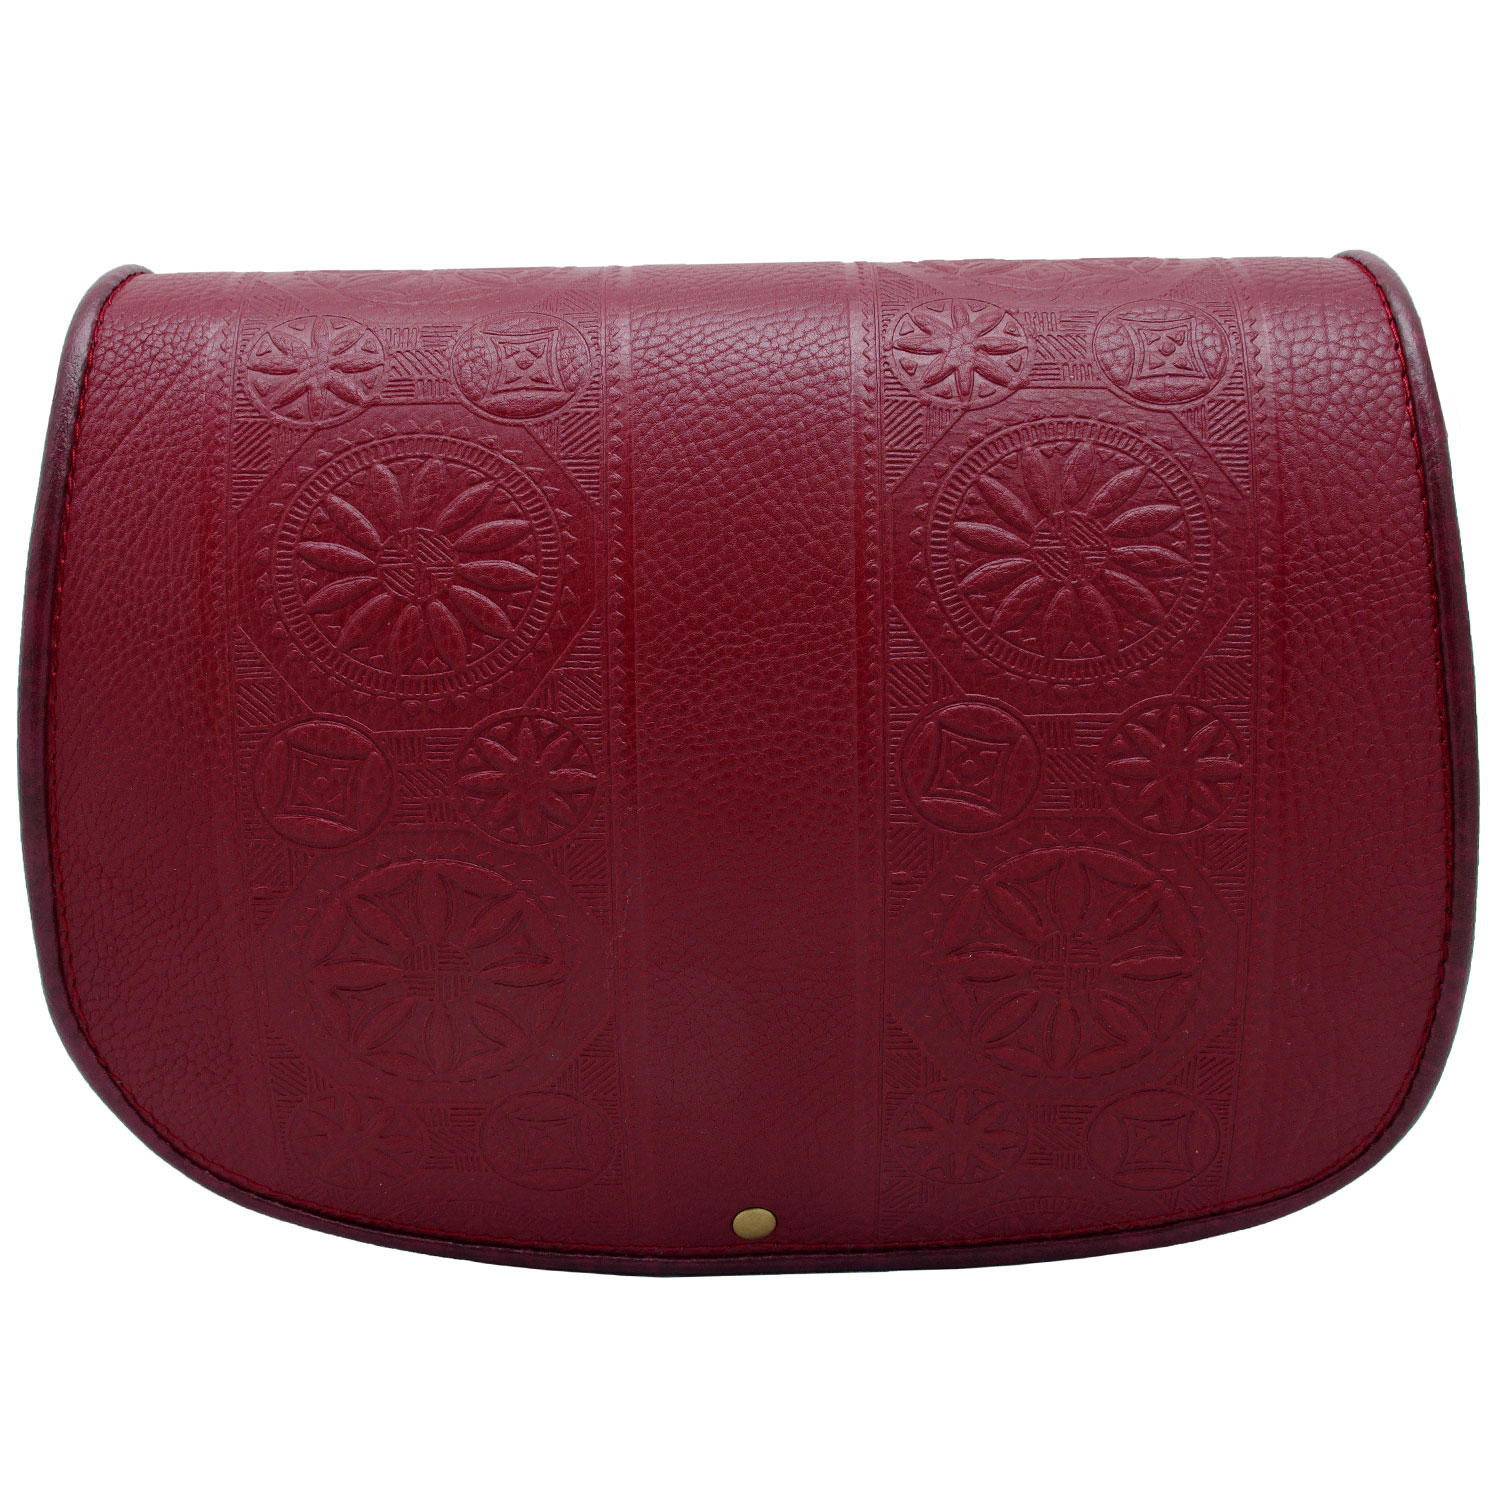 cabernet-sauvignon-leather-full-grain-woman-bag-shoulder-messenger-satchel